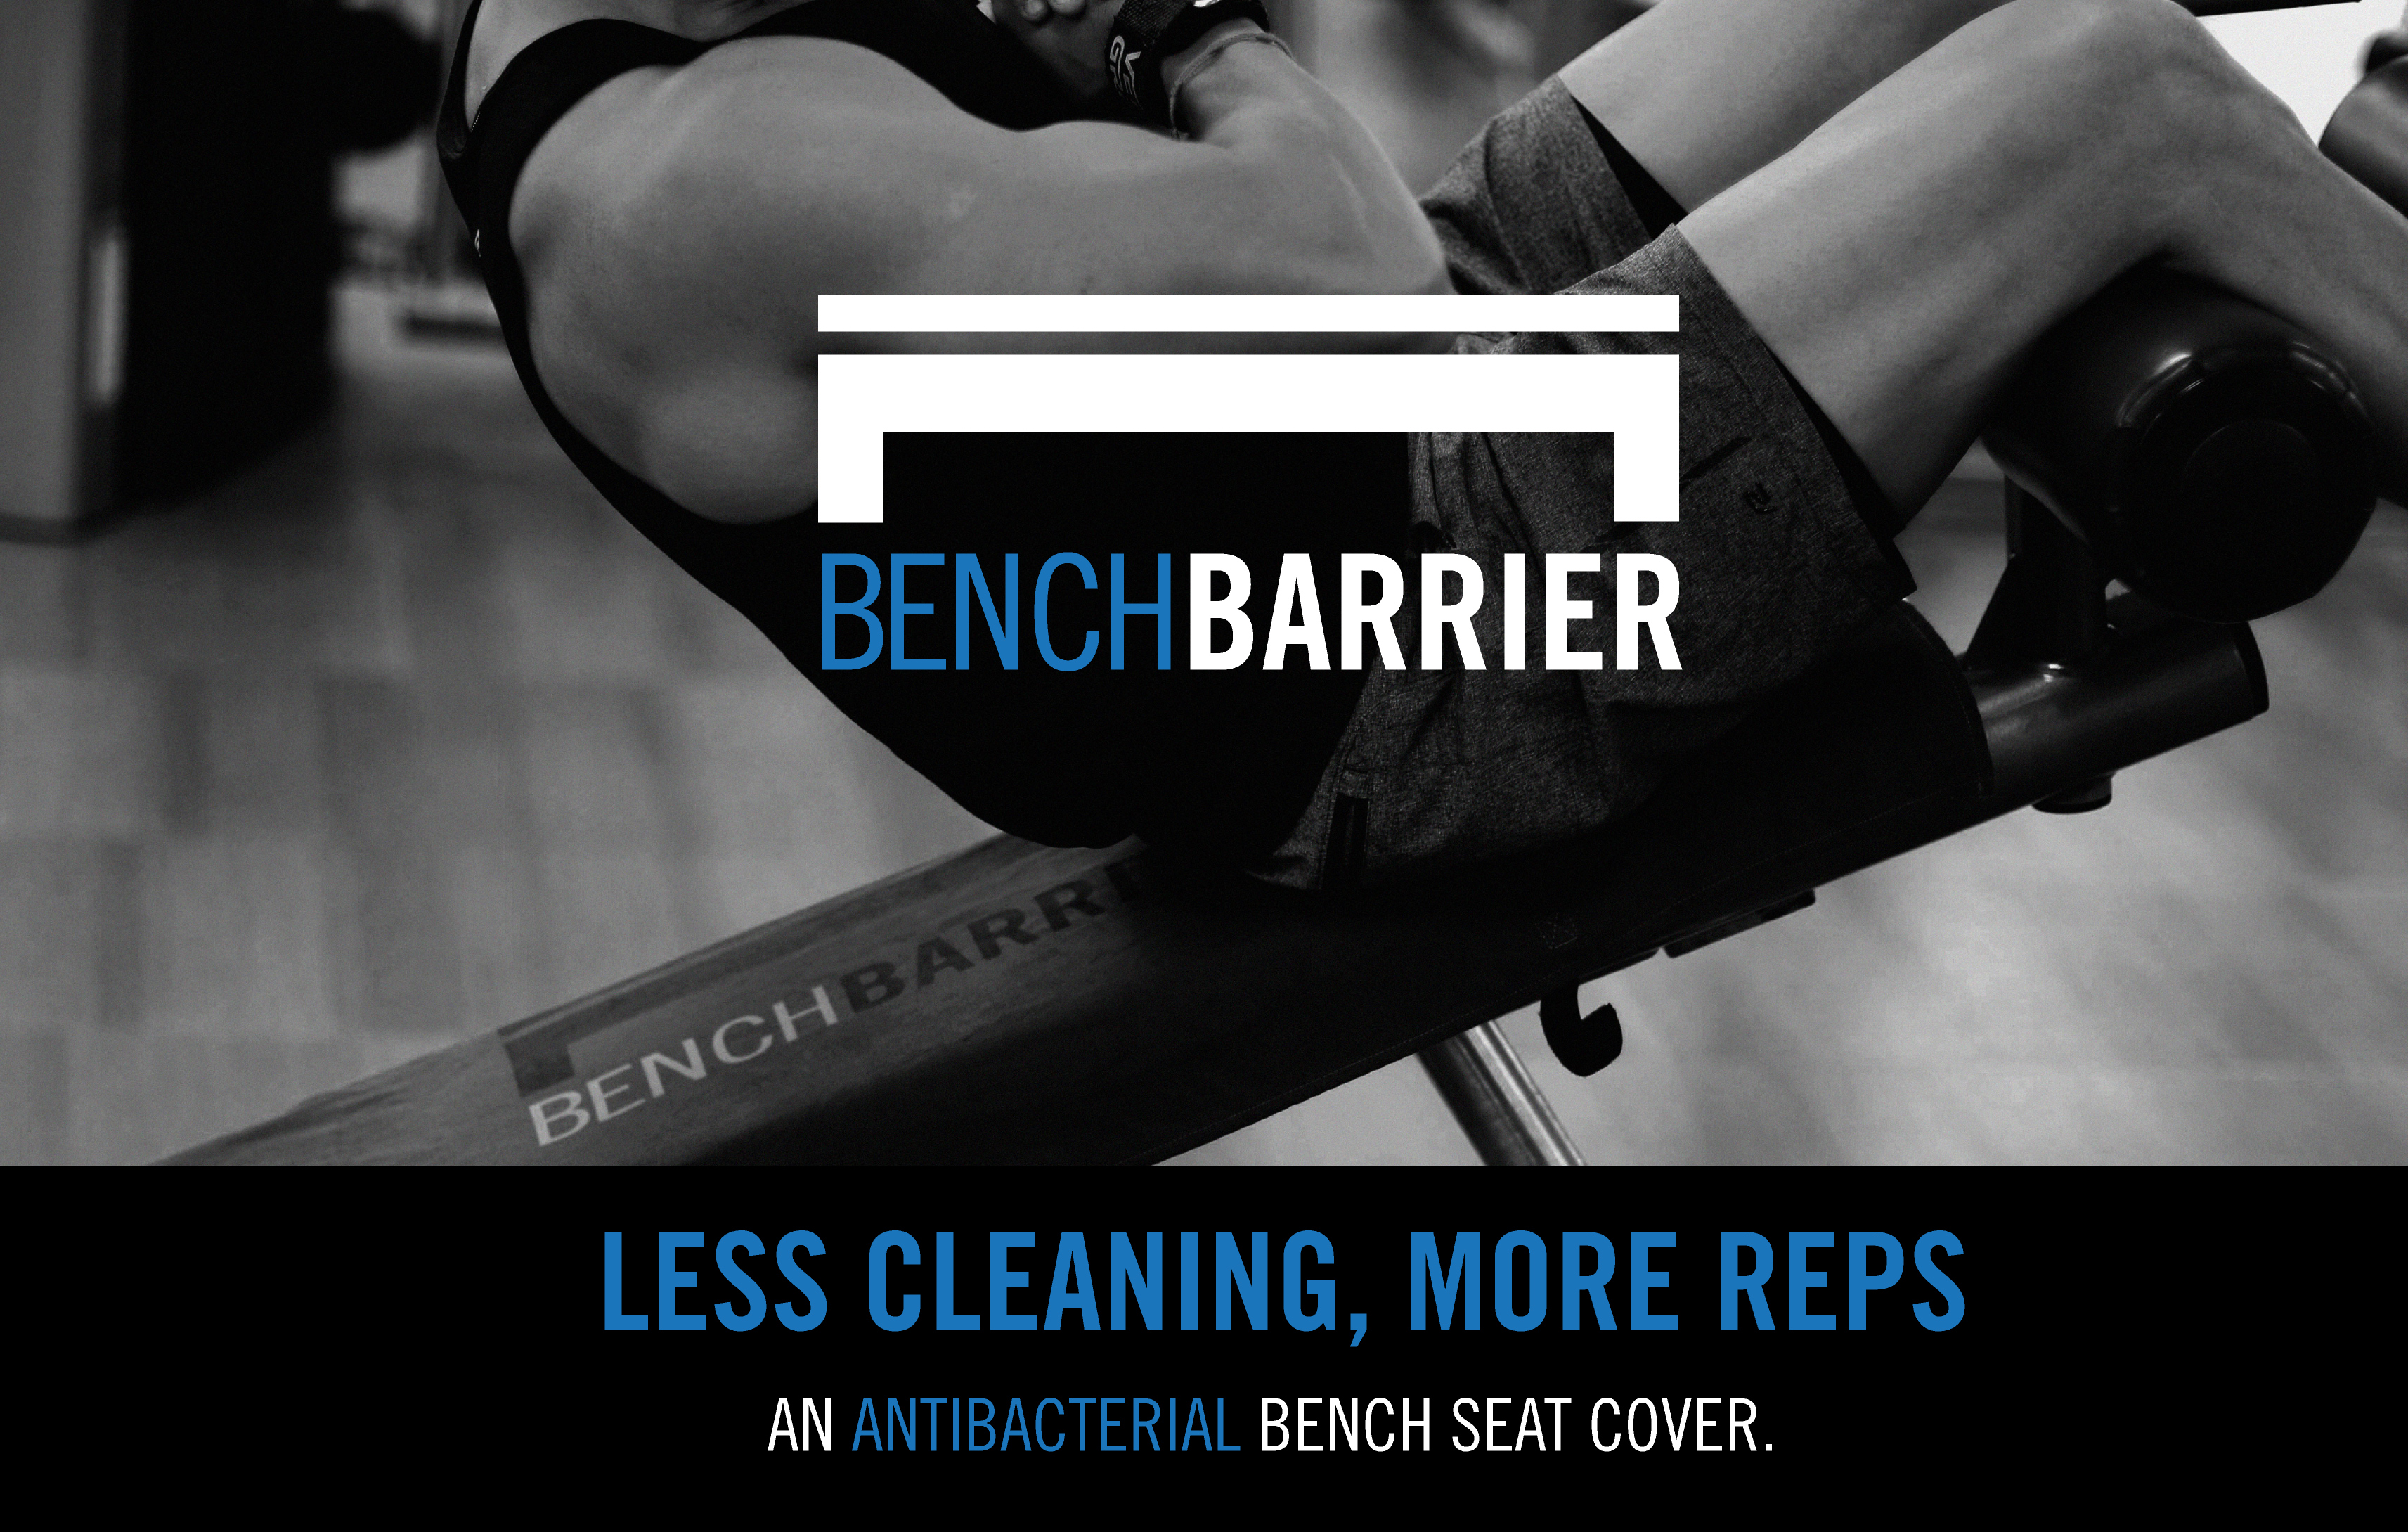 BENCHBARRIER™ is utilizing Mr. Checkout's Fast Track Program to reach Independent Nutrition Stores Nationwide.